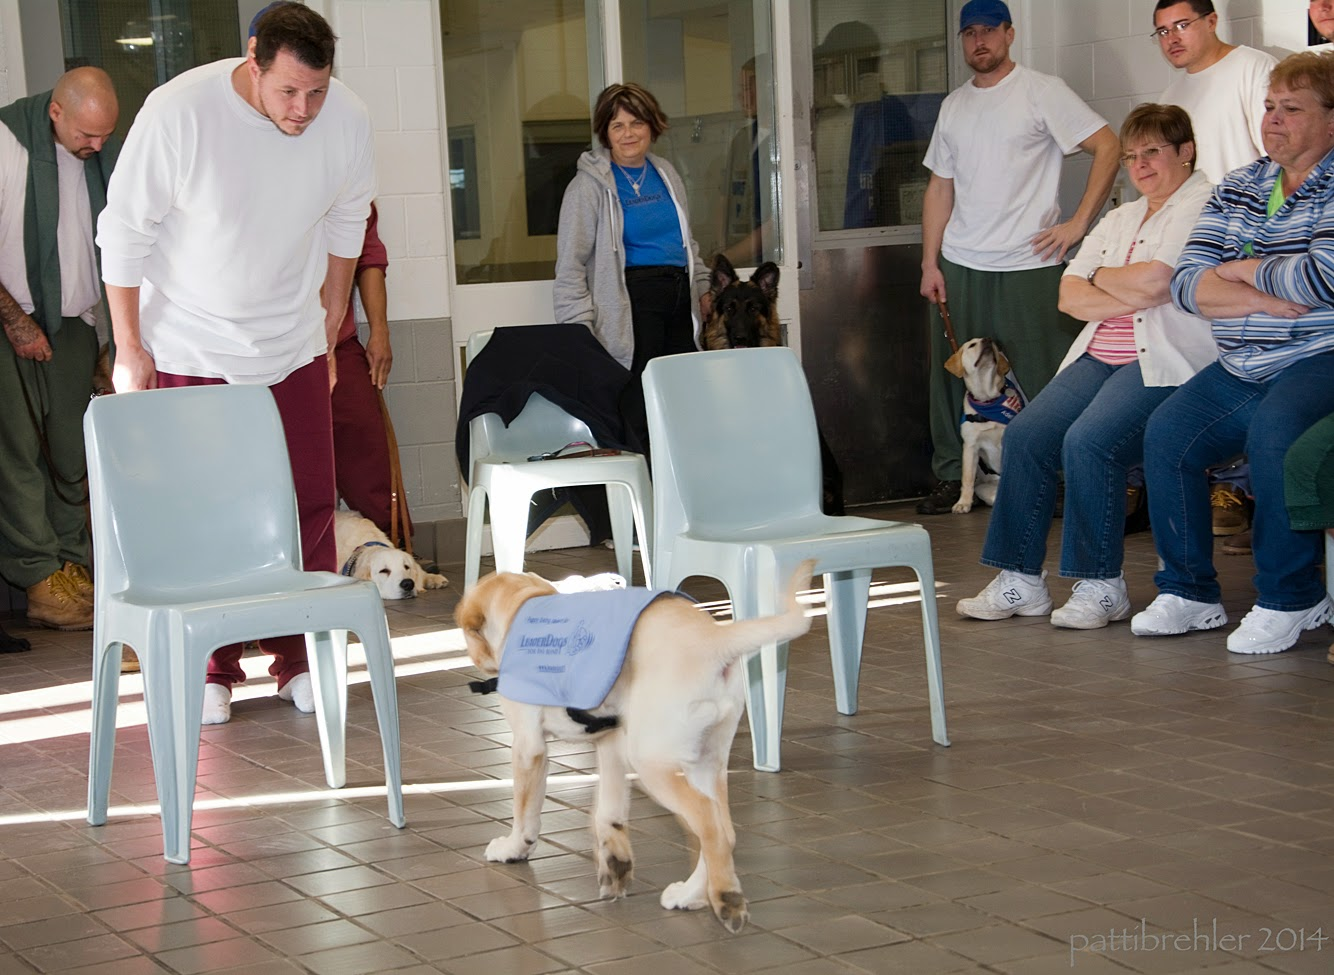 A yellow lab/golden retriever puppy wearing the blue Future Leader Dog jacket is walking away from the camera toward two light blue plastic chairs. Just beyond the chairs is a man wearing a white t-shirt and maroon pants. The man is facing the  puppy and looking down at him. In the background are three men and three women sitting or standing and watching the puppy.